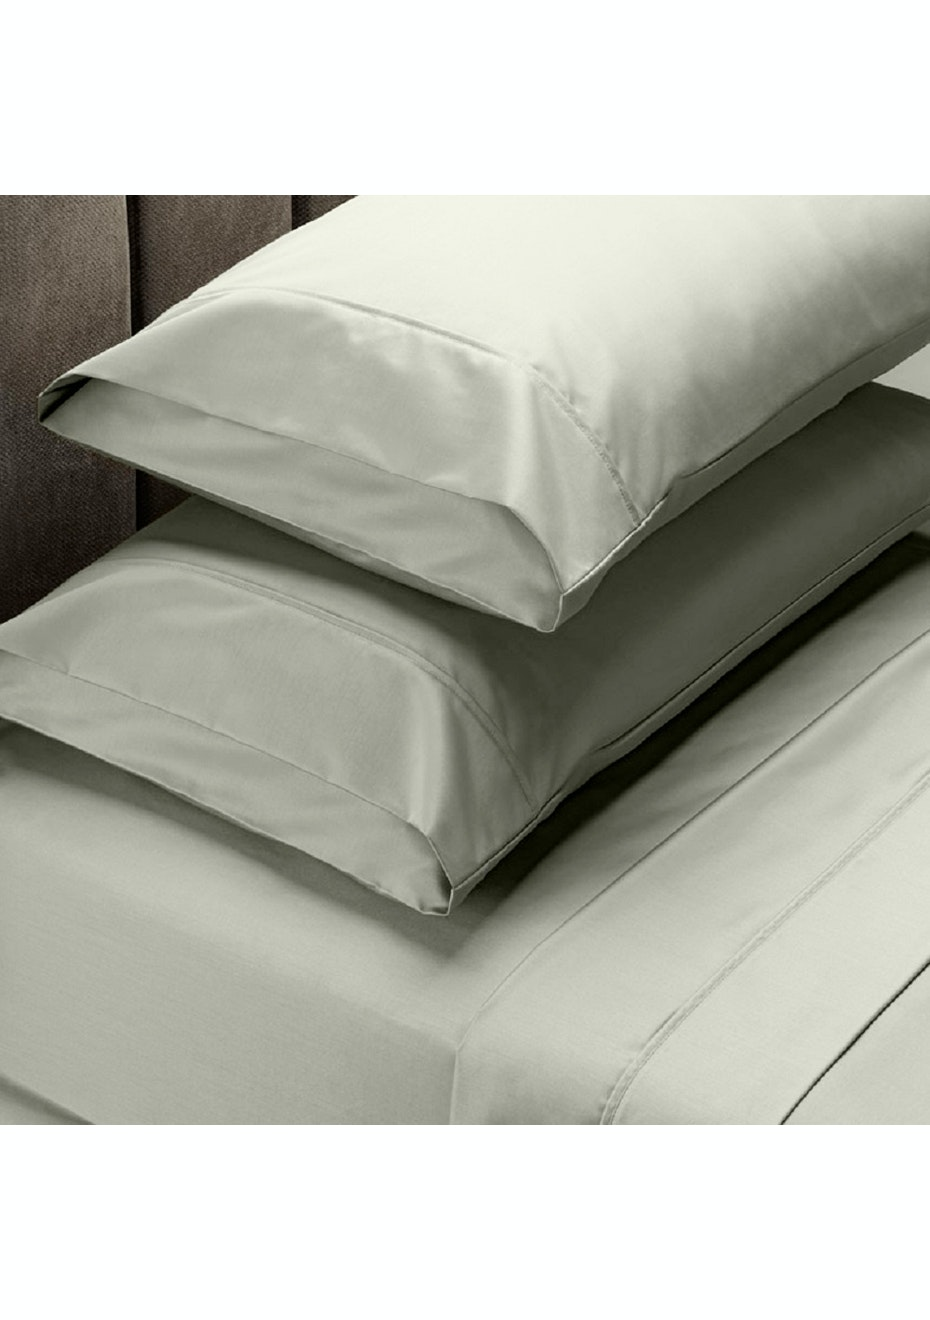 Park Avenue 1000 Thread Count 100% Egyptian Cotton Sheet Sets Queen - Oyster